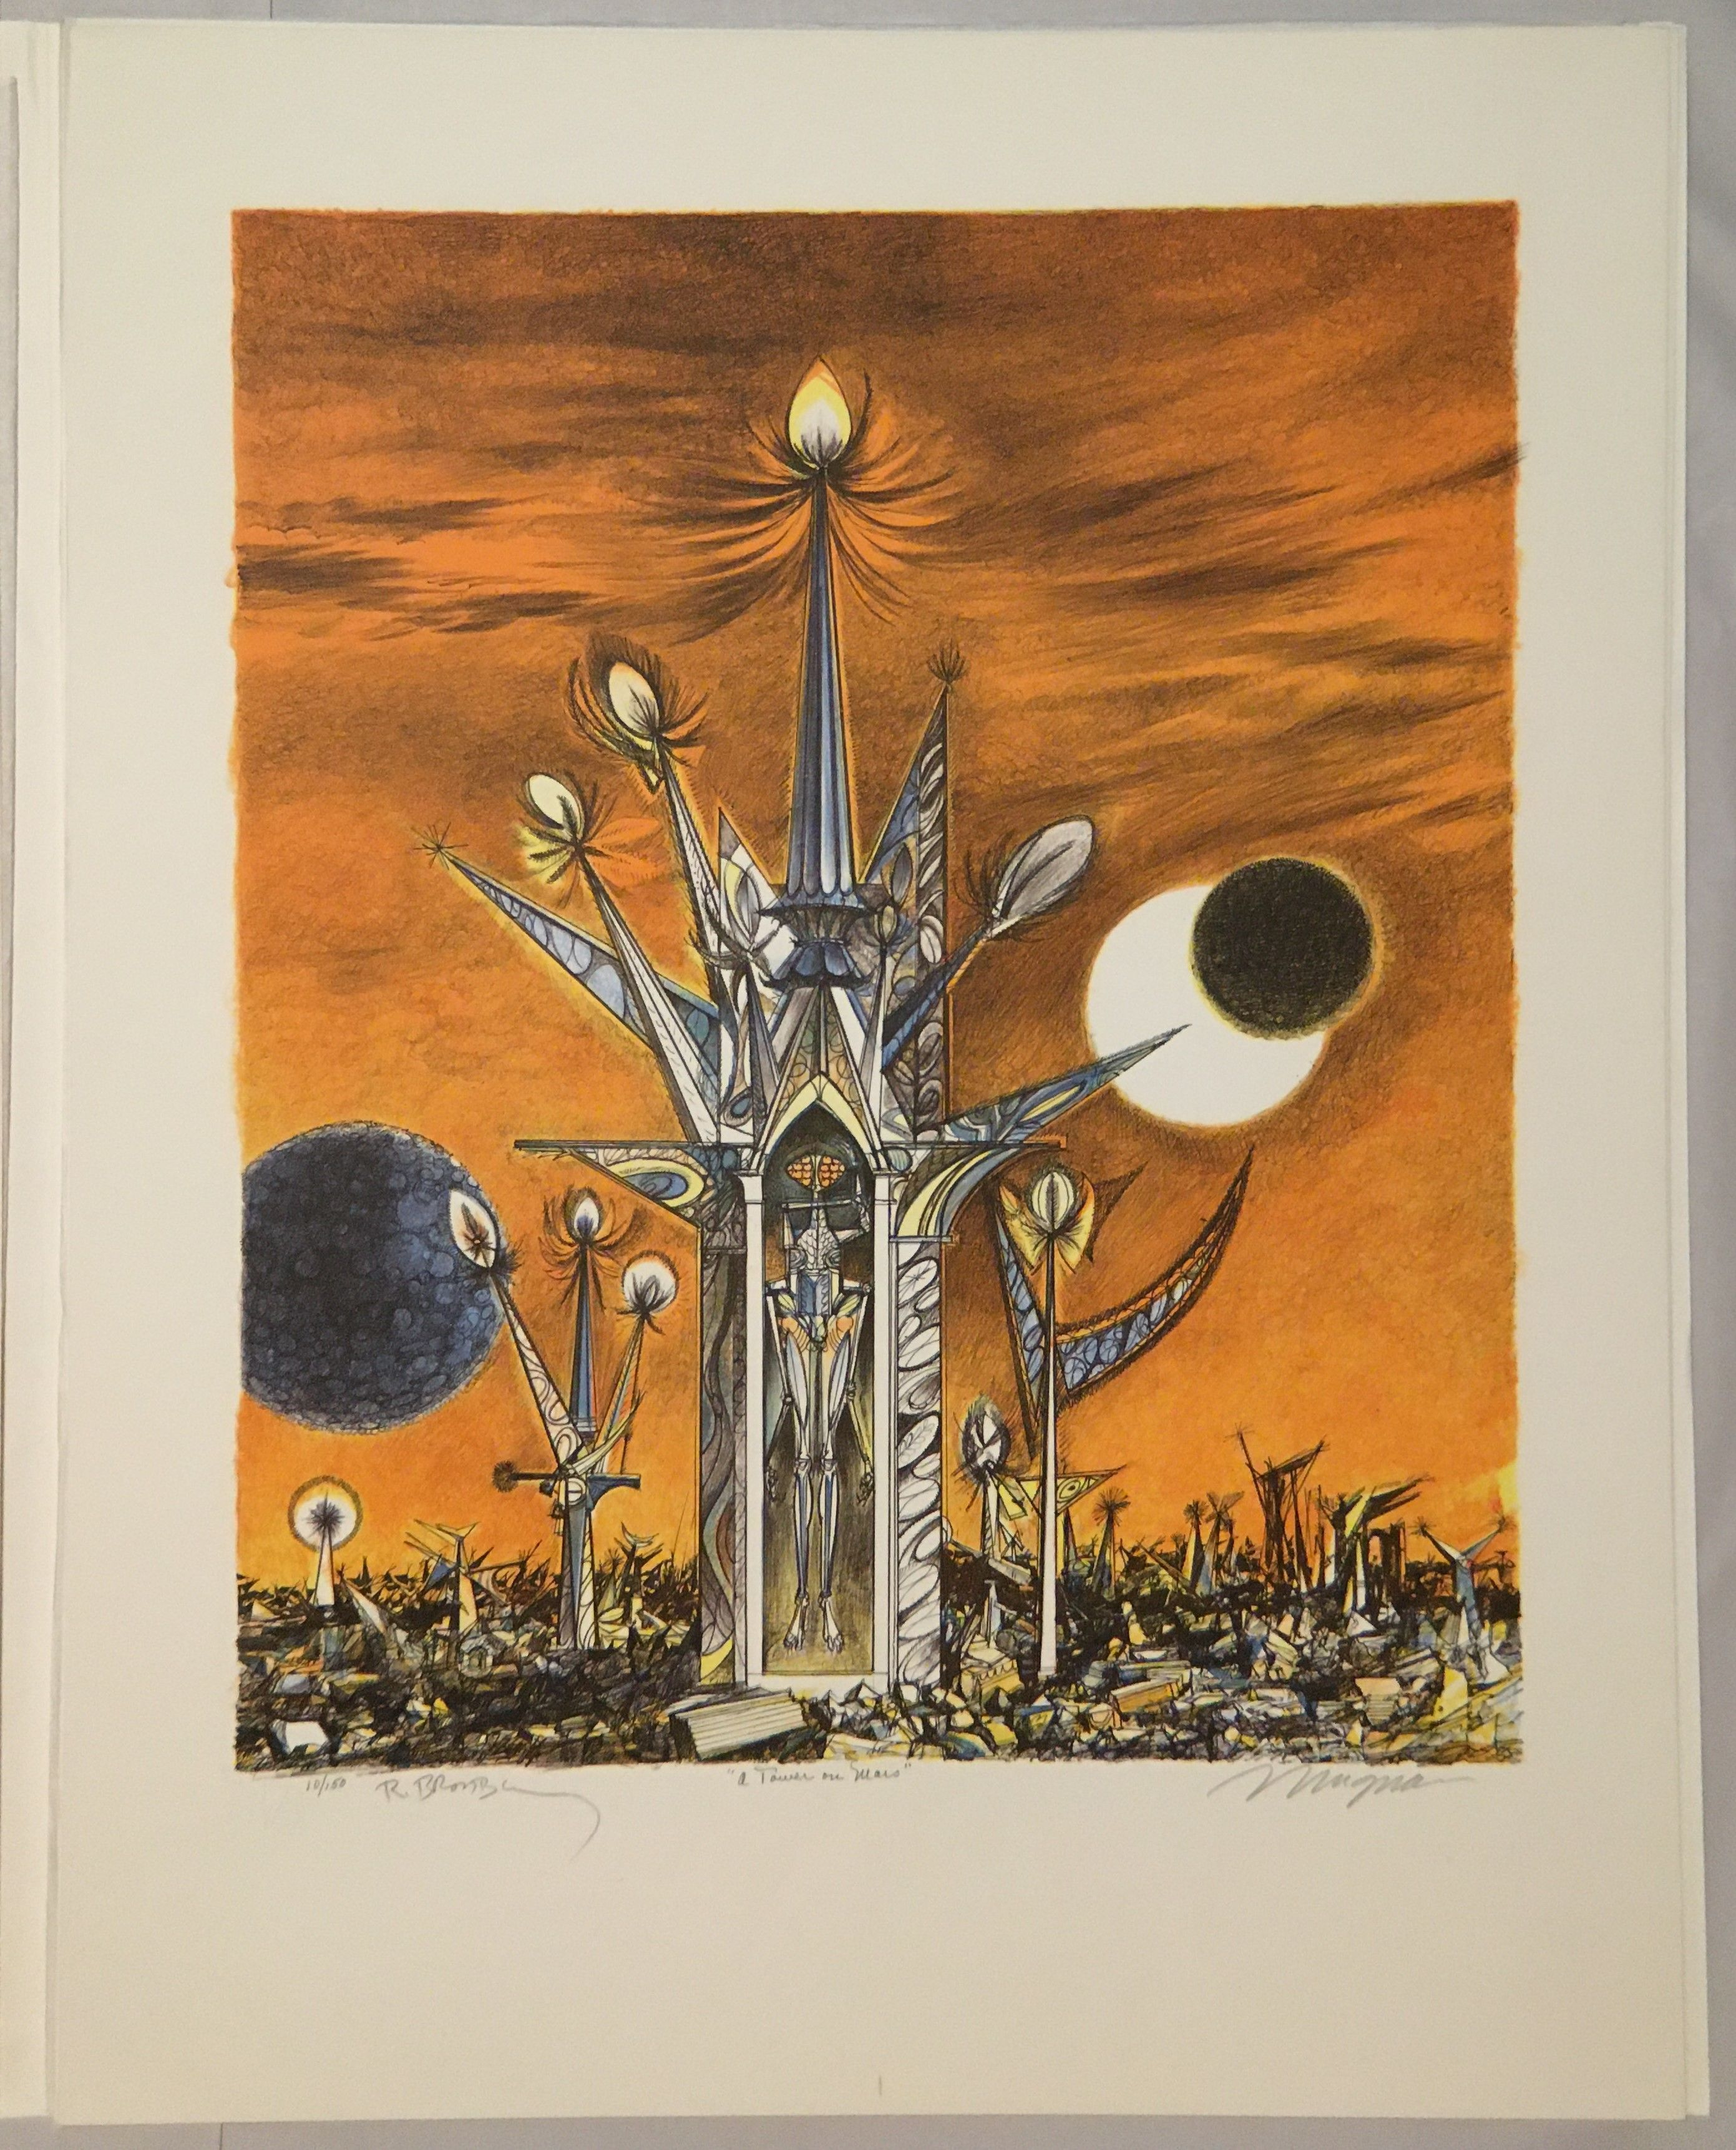 Joseph Mugnaini / Ten Views Of The Moon Illustrated 1981